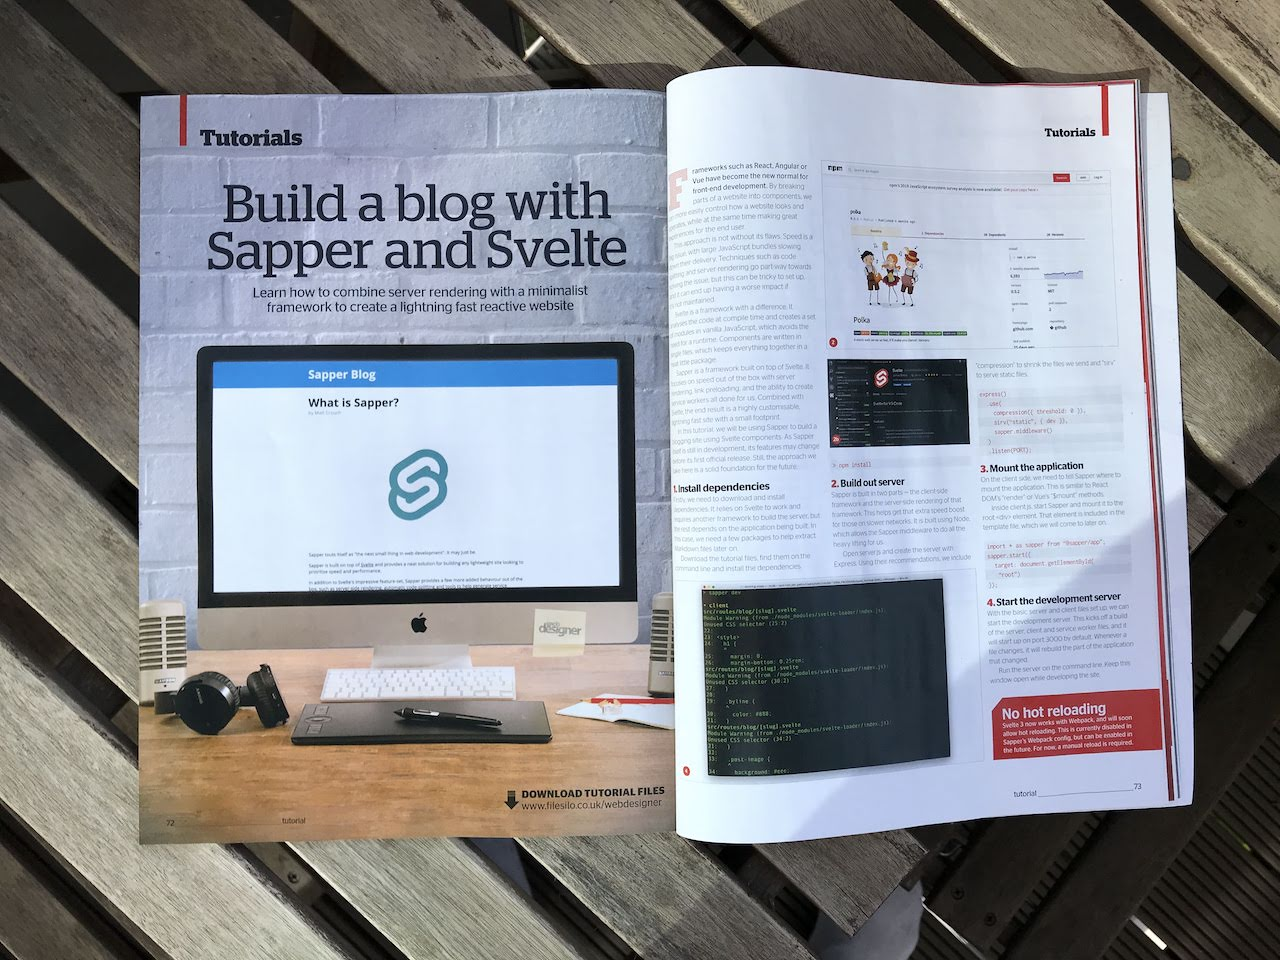 Build a blog with Sapper and Svelte